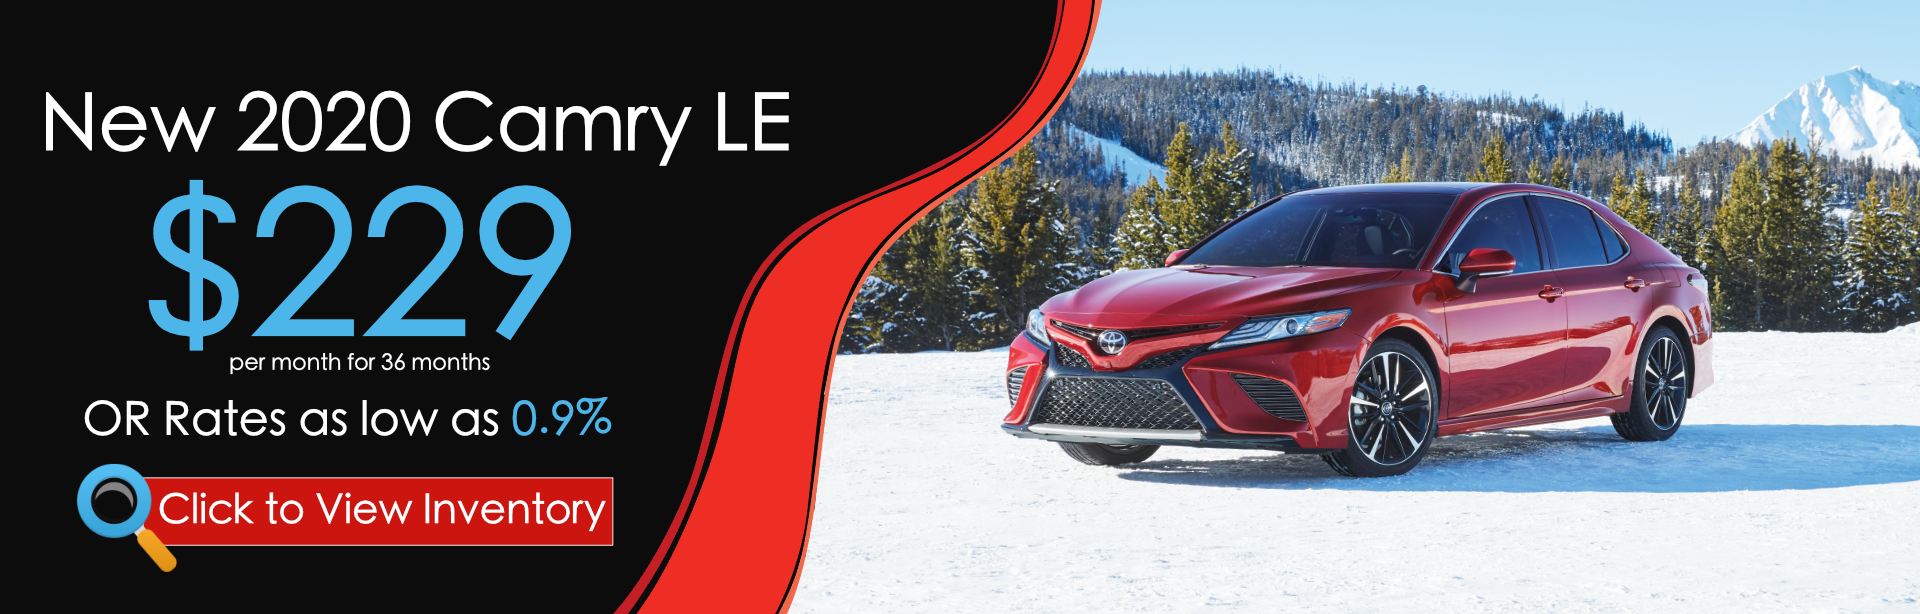 2020 Camry Offer